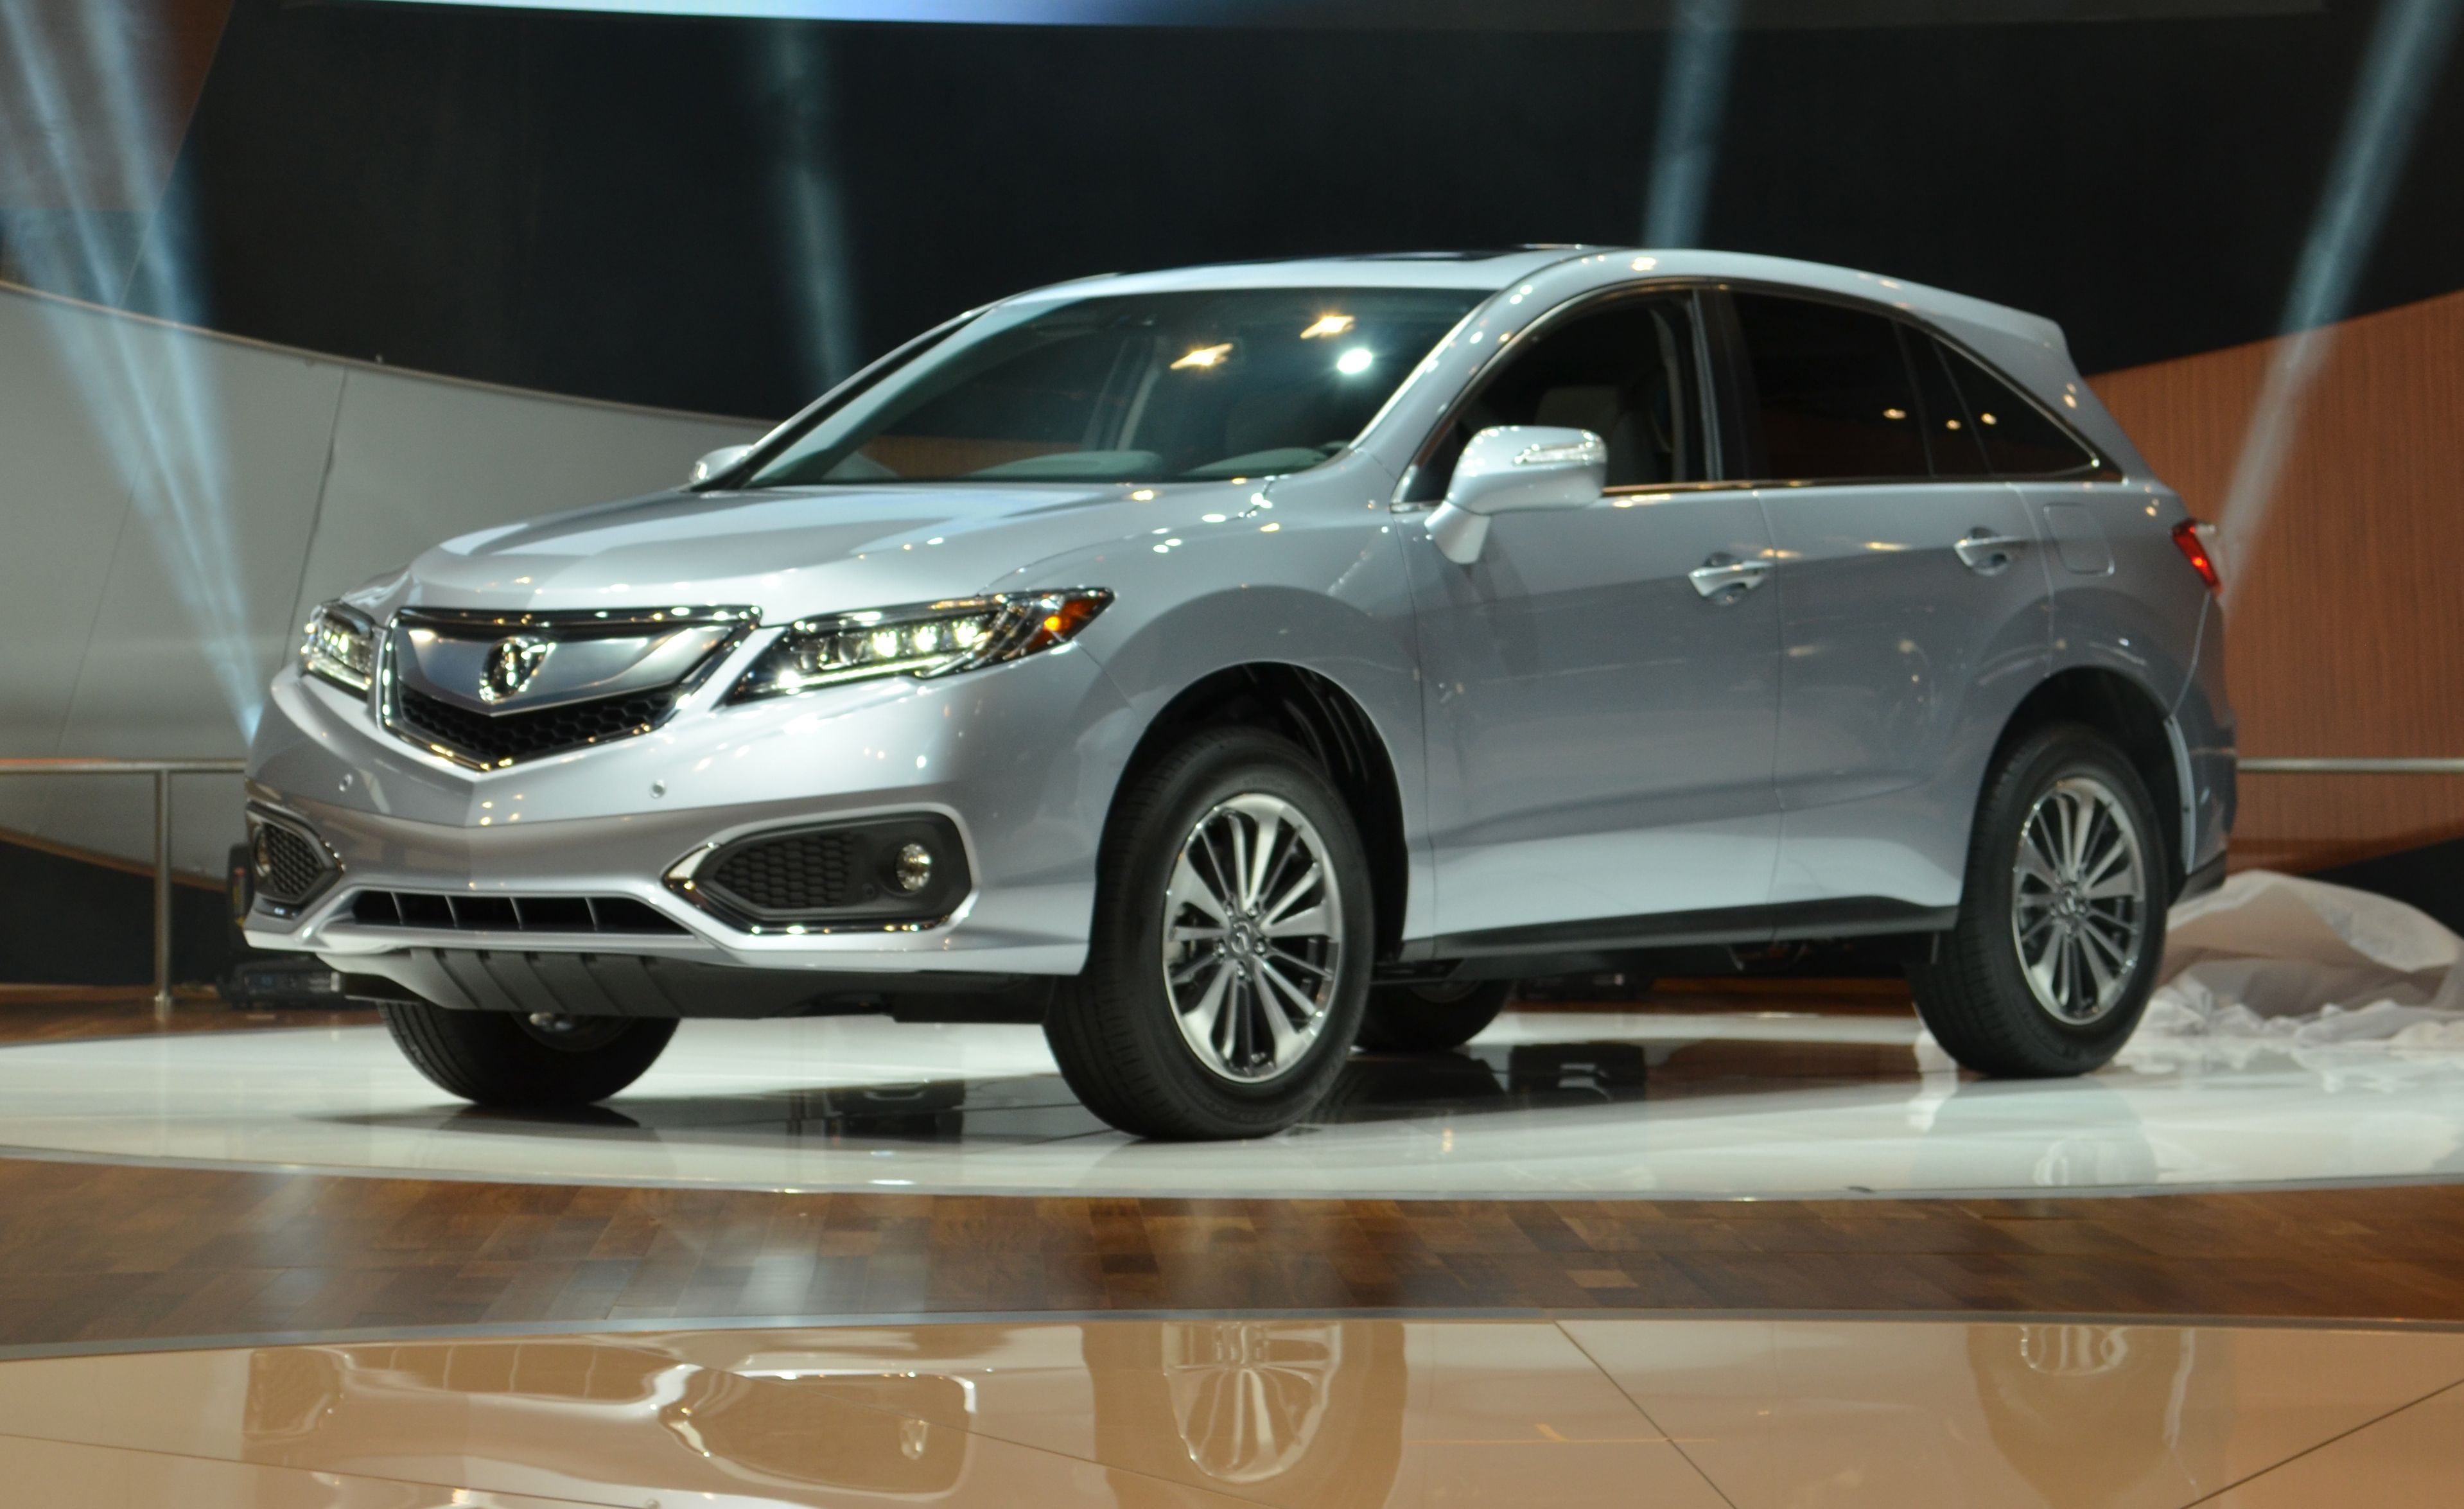 news sport model suv the norm acura with hybrid breaks motor mdx